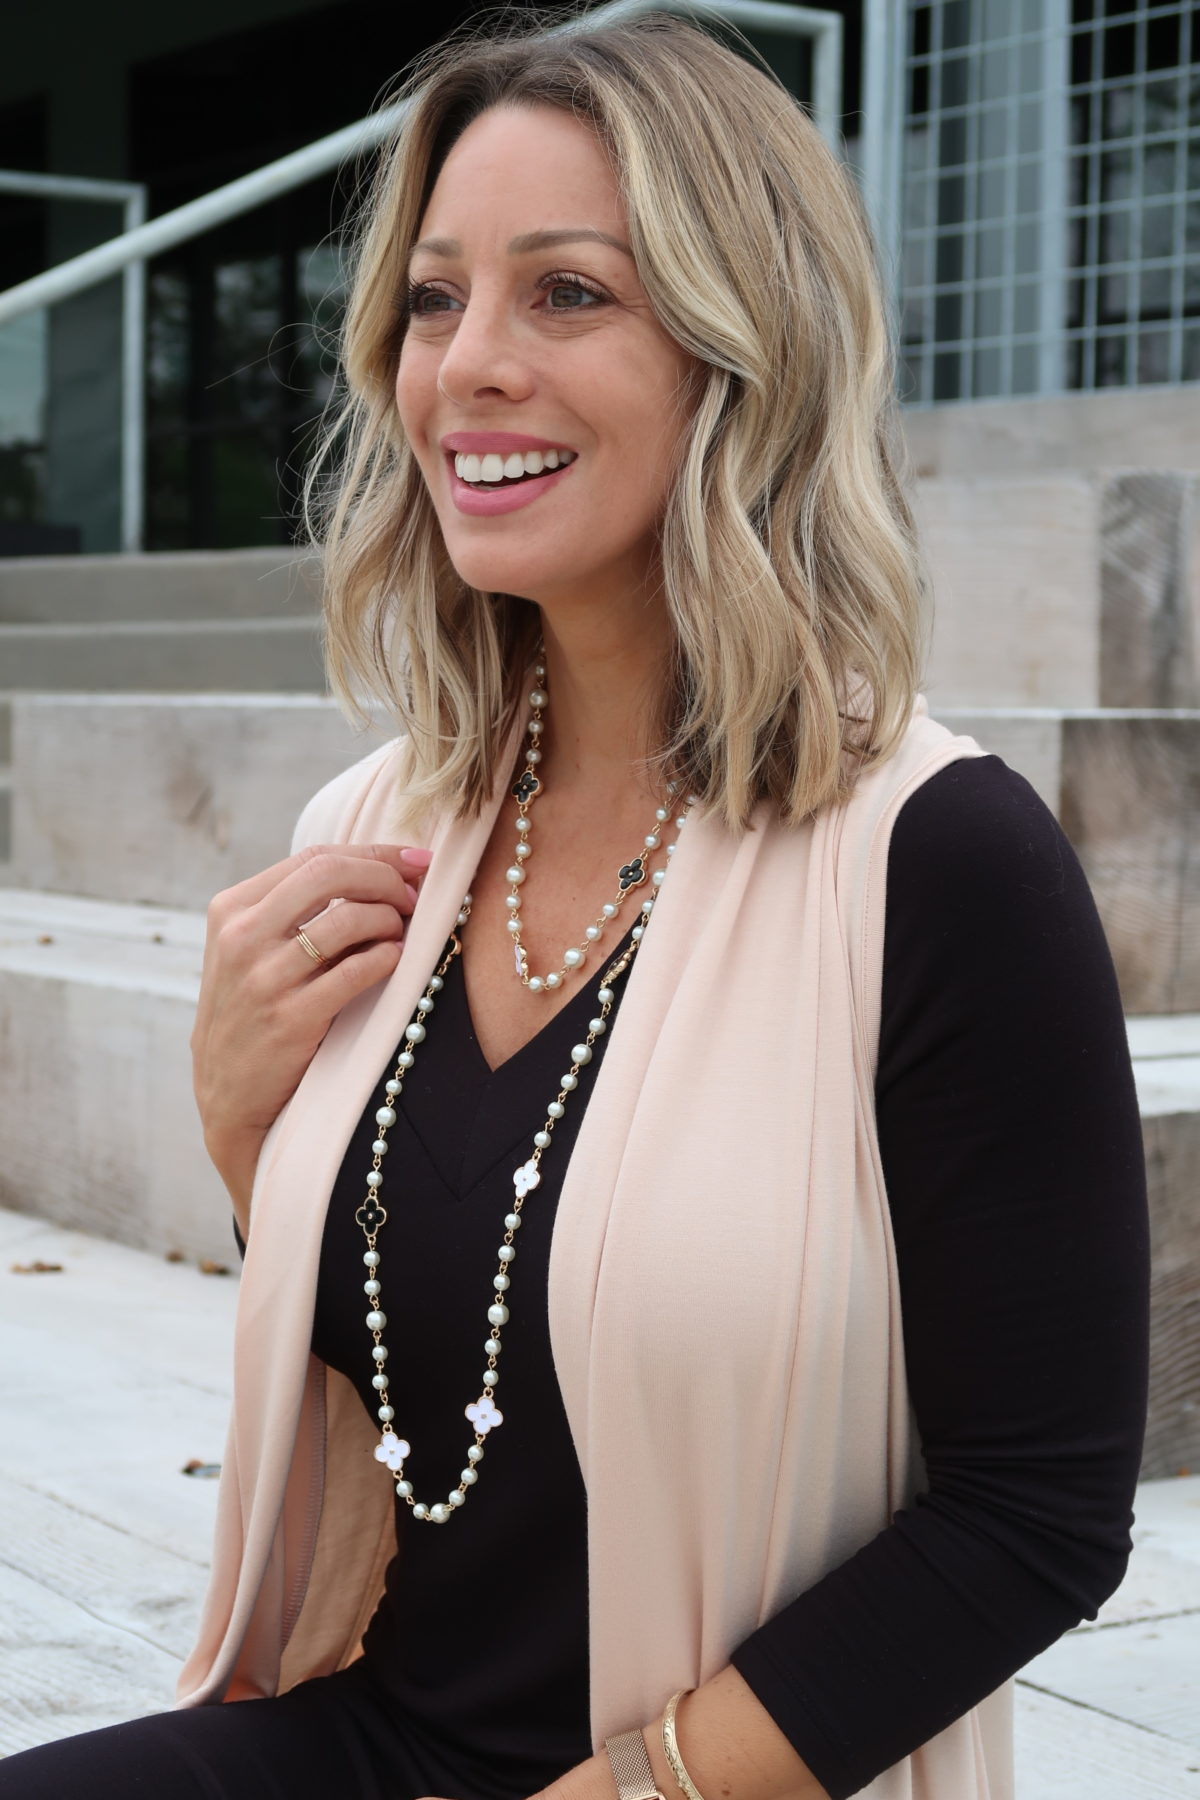 Pink Cardigan, Black Dress, Pearl Clover Necklace